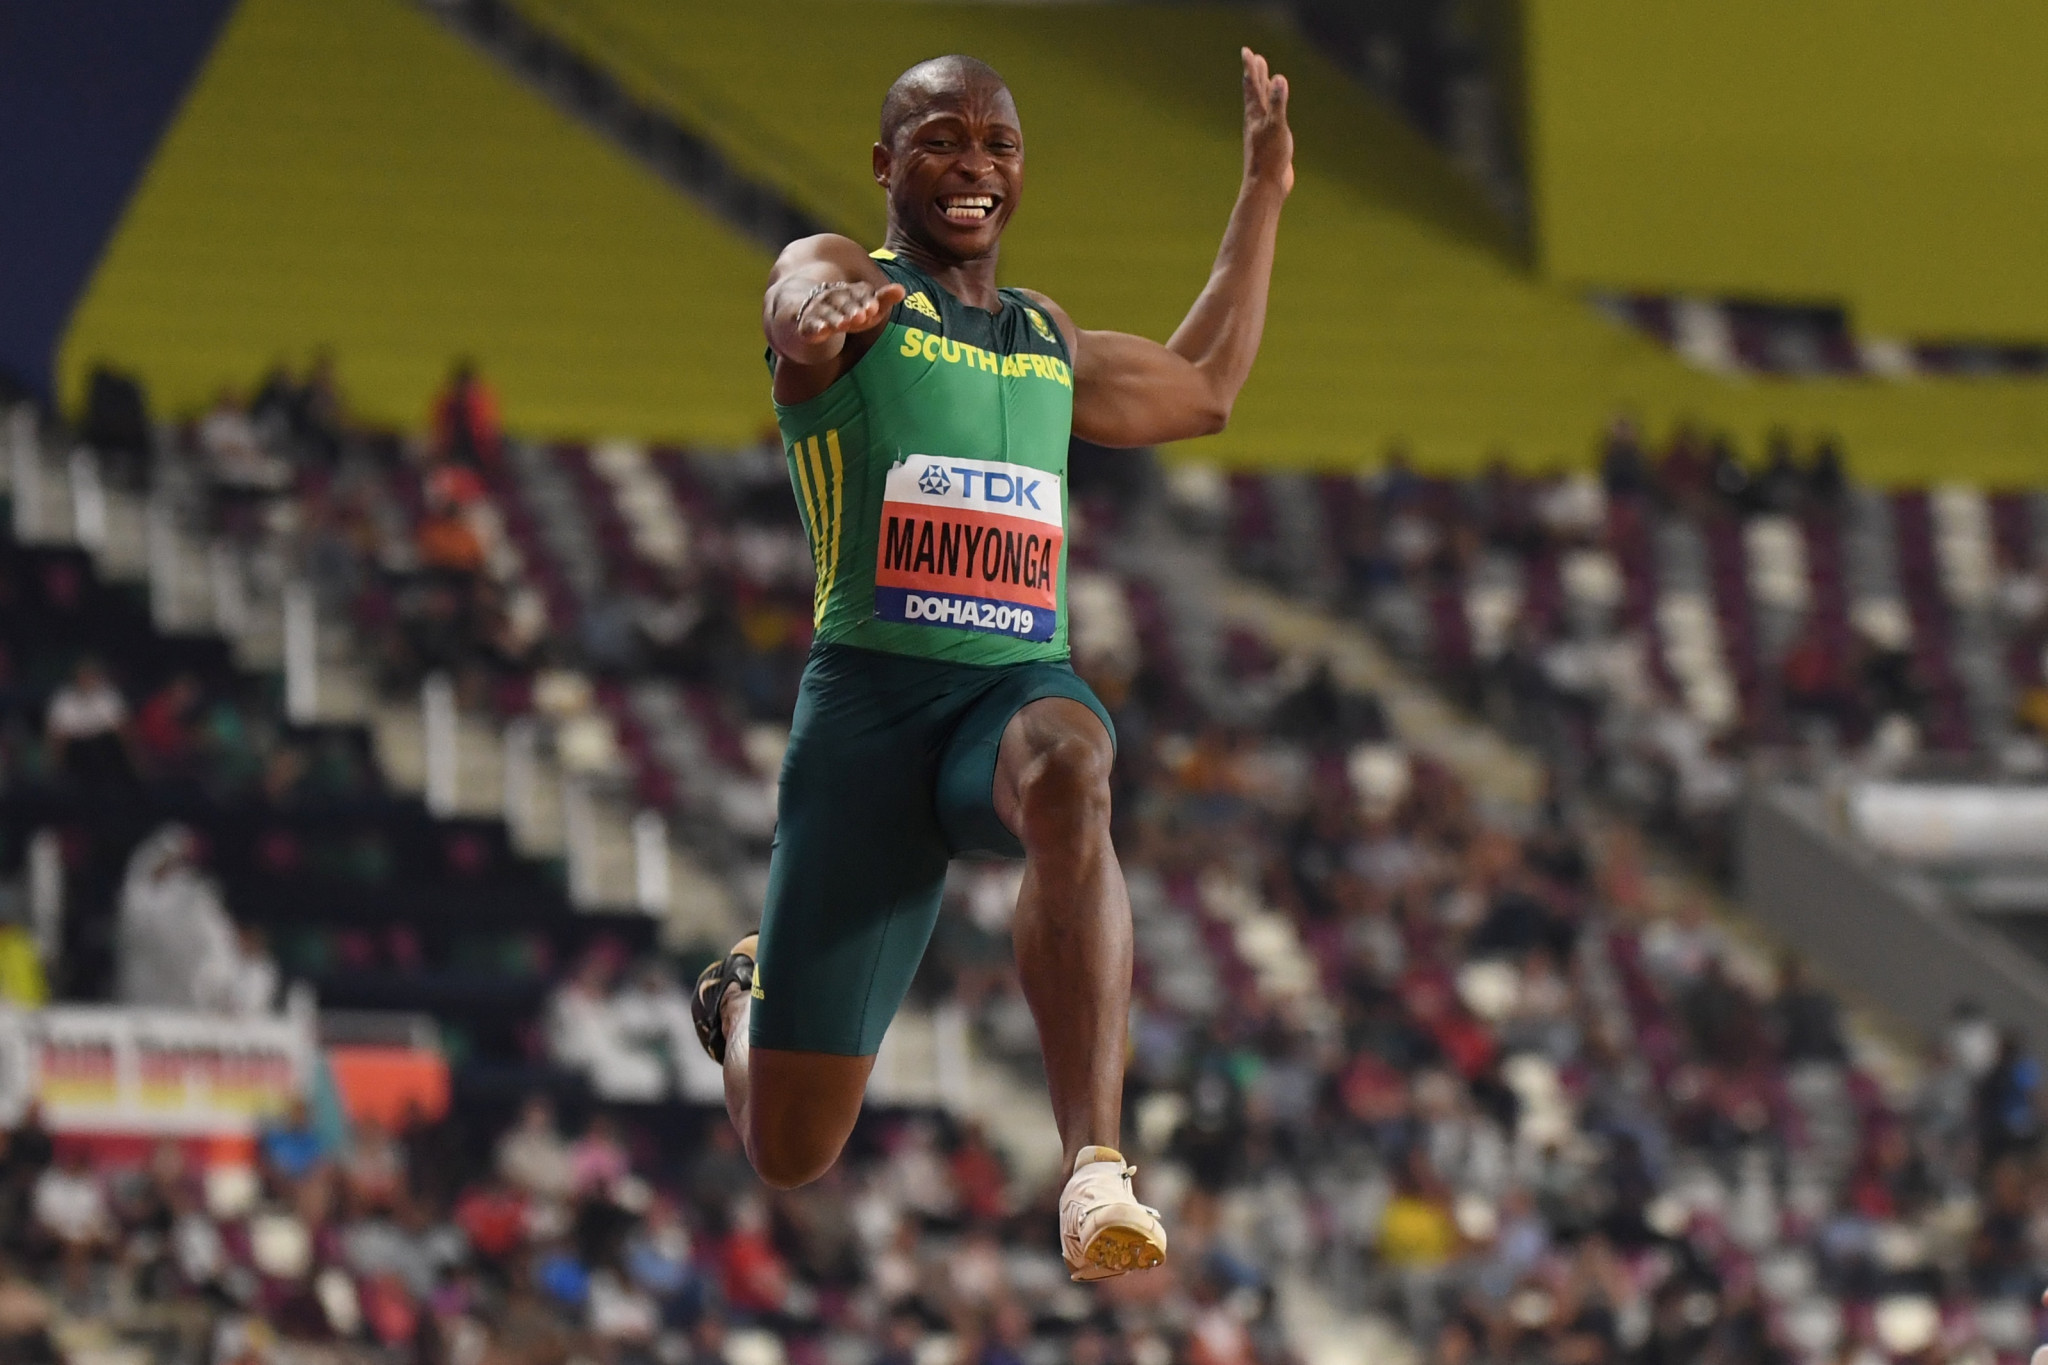 Luvo Manyonga could miss the Tokyo 2020 Olympics and 2022 World Athletics Championships if he is found guilty of a whereabouts failure ©Getty Images